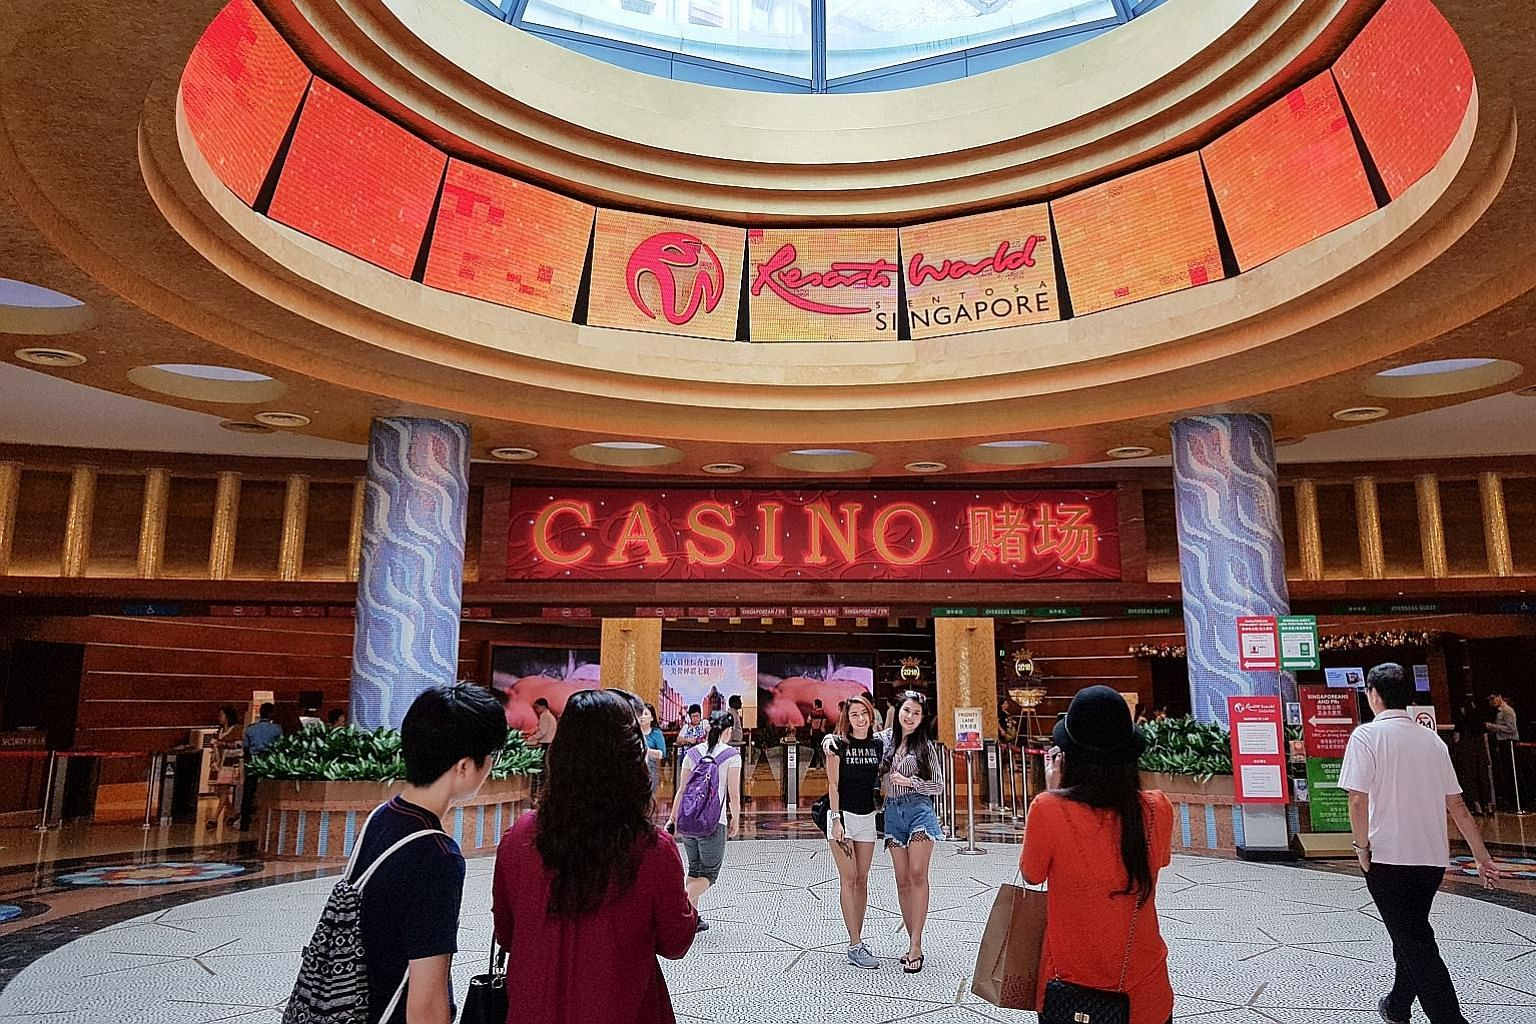 From today, the daily and annual levies for Singapore permanent residents and citizens to enter the casinos in Resorts World Sentosa (above) and Marina Bay Sands will be raised.